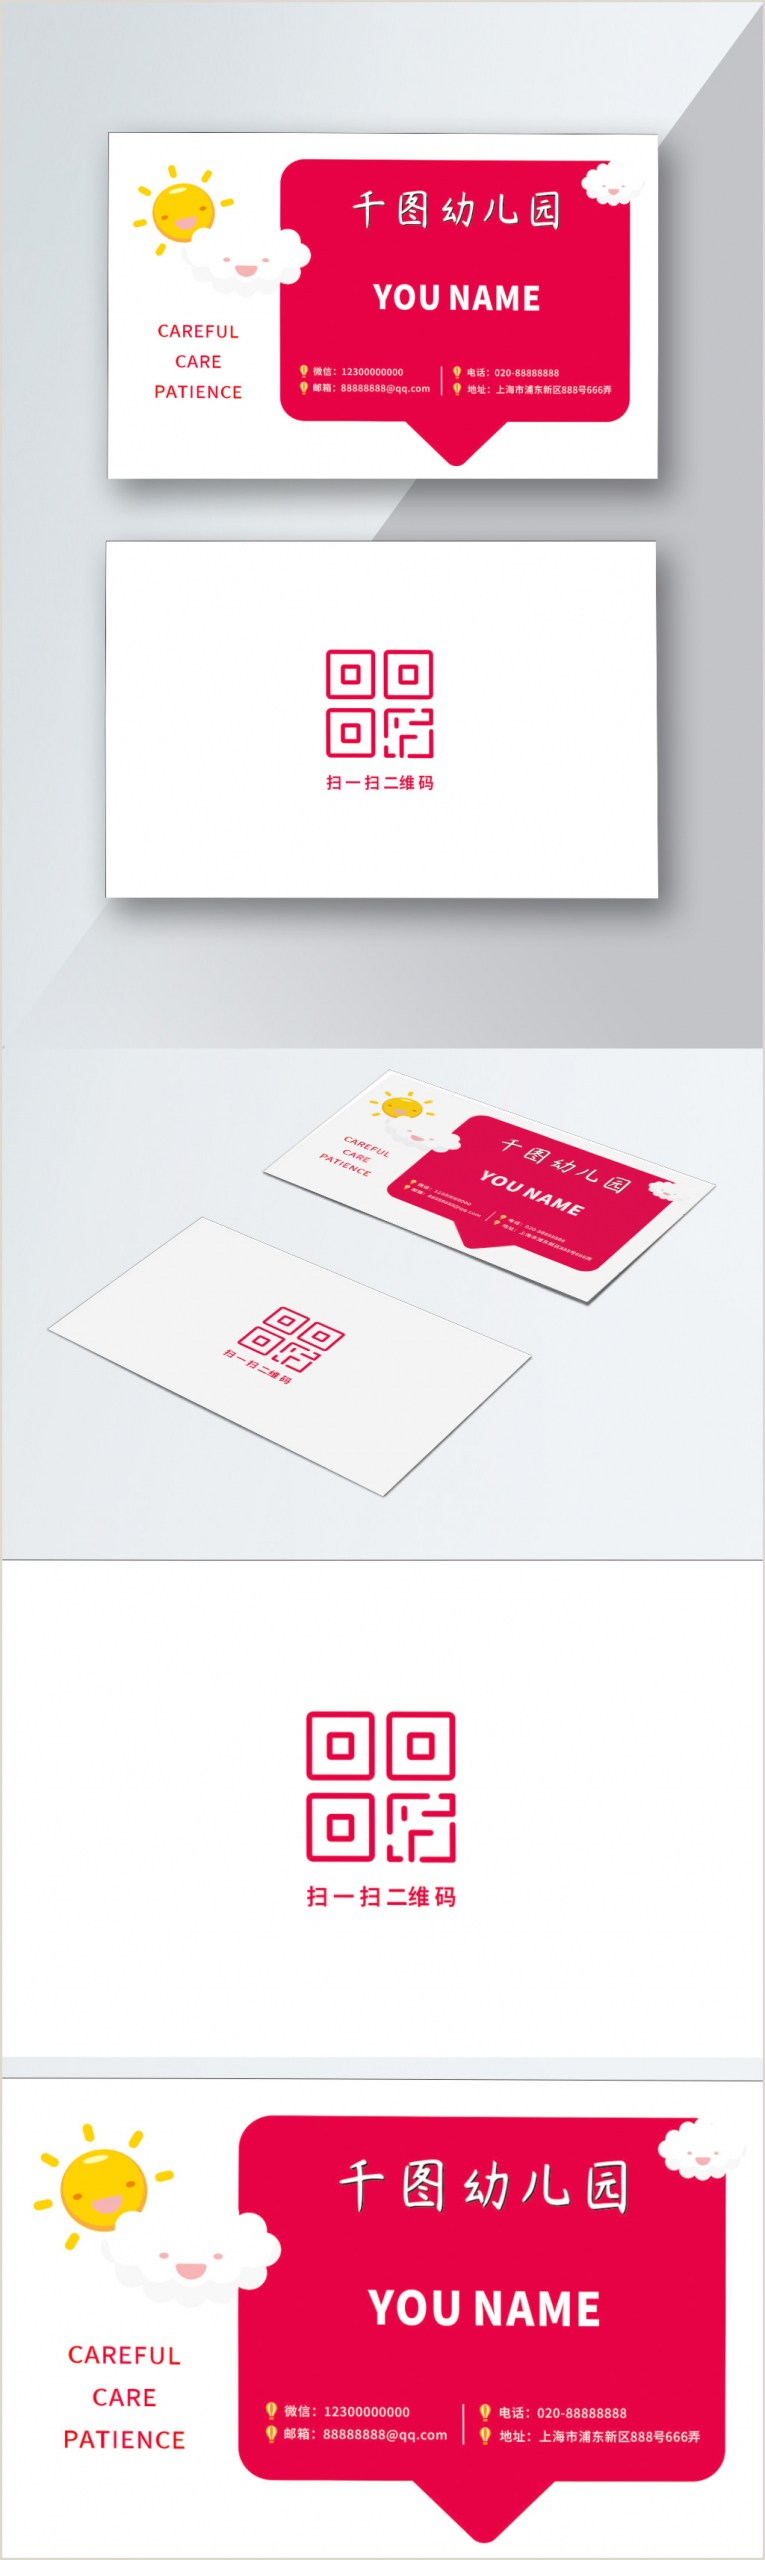 Personal Business Cards Templates Free Personal Business Card Template Template Image Picture Free